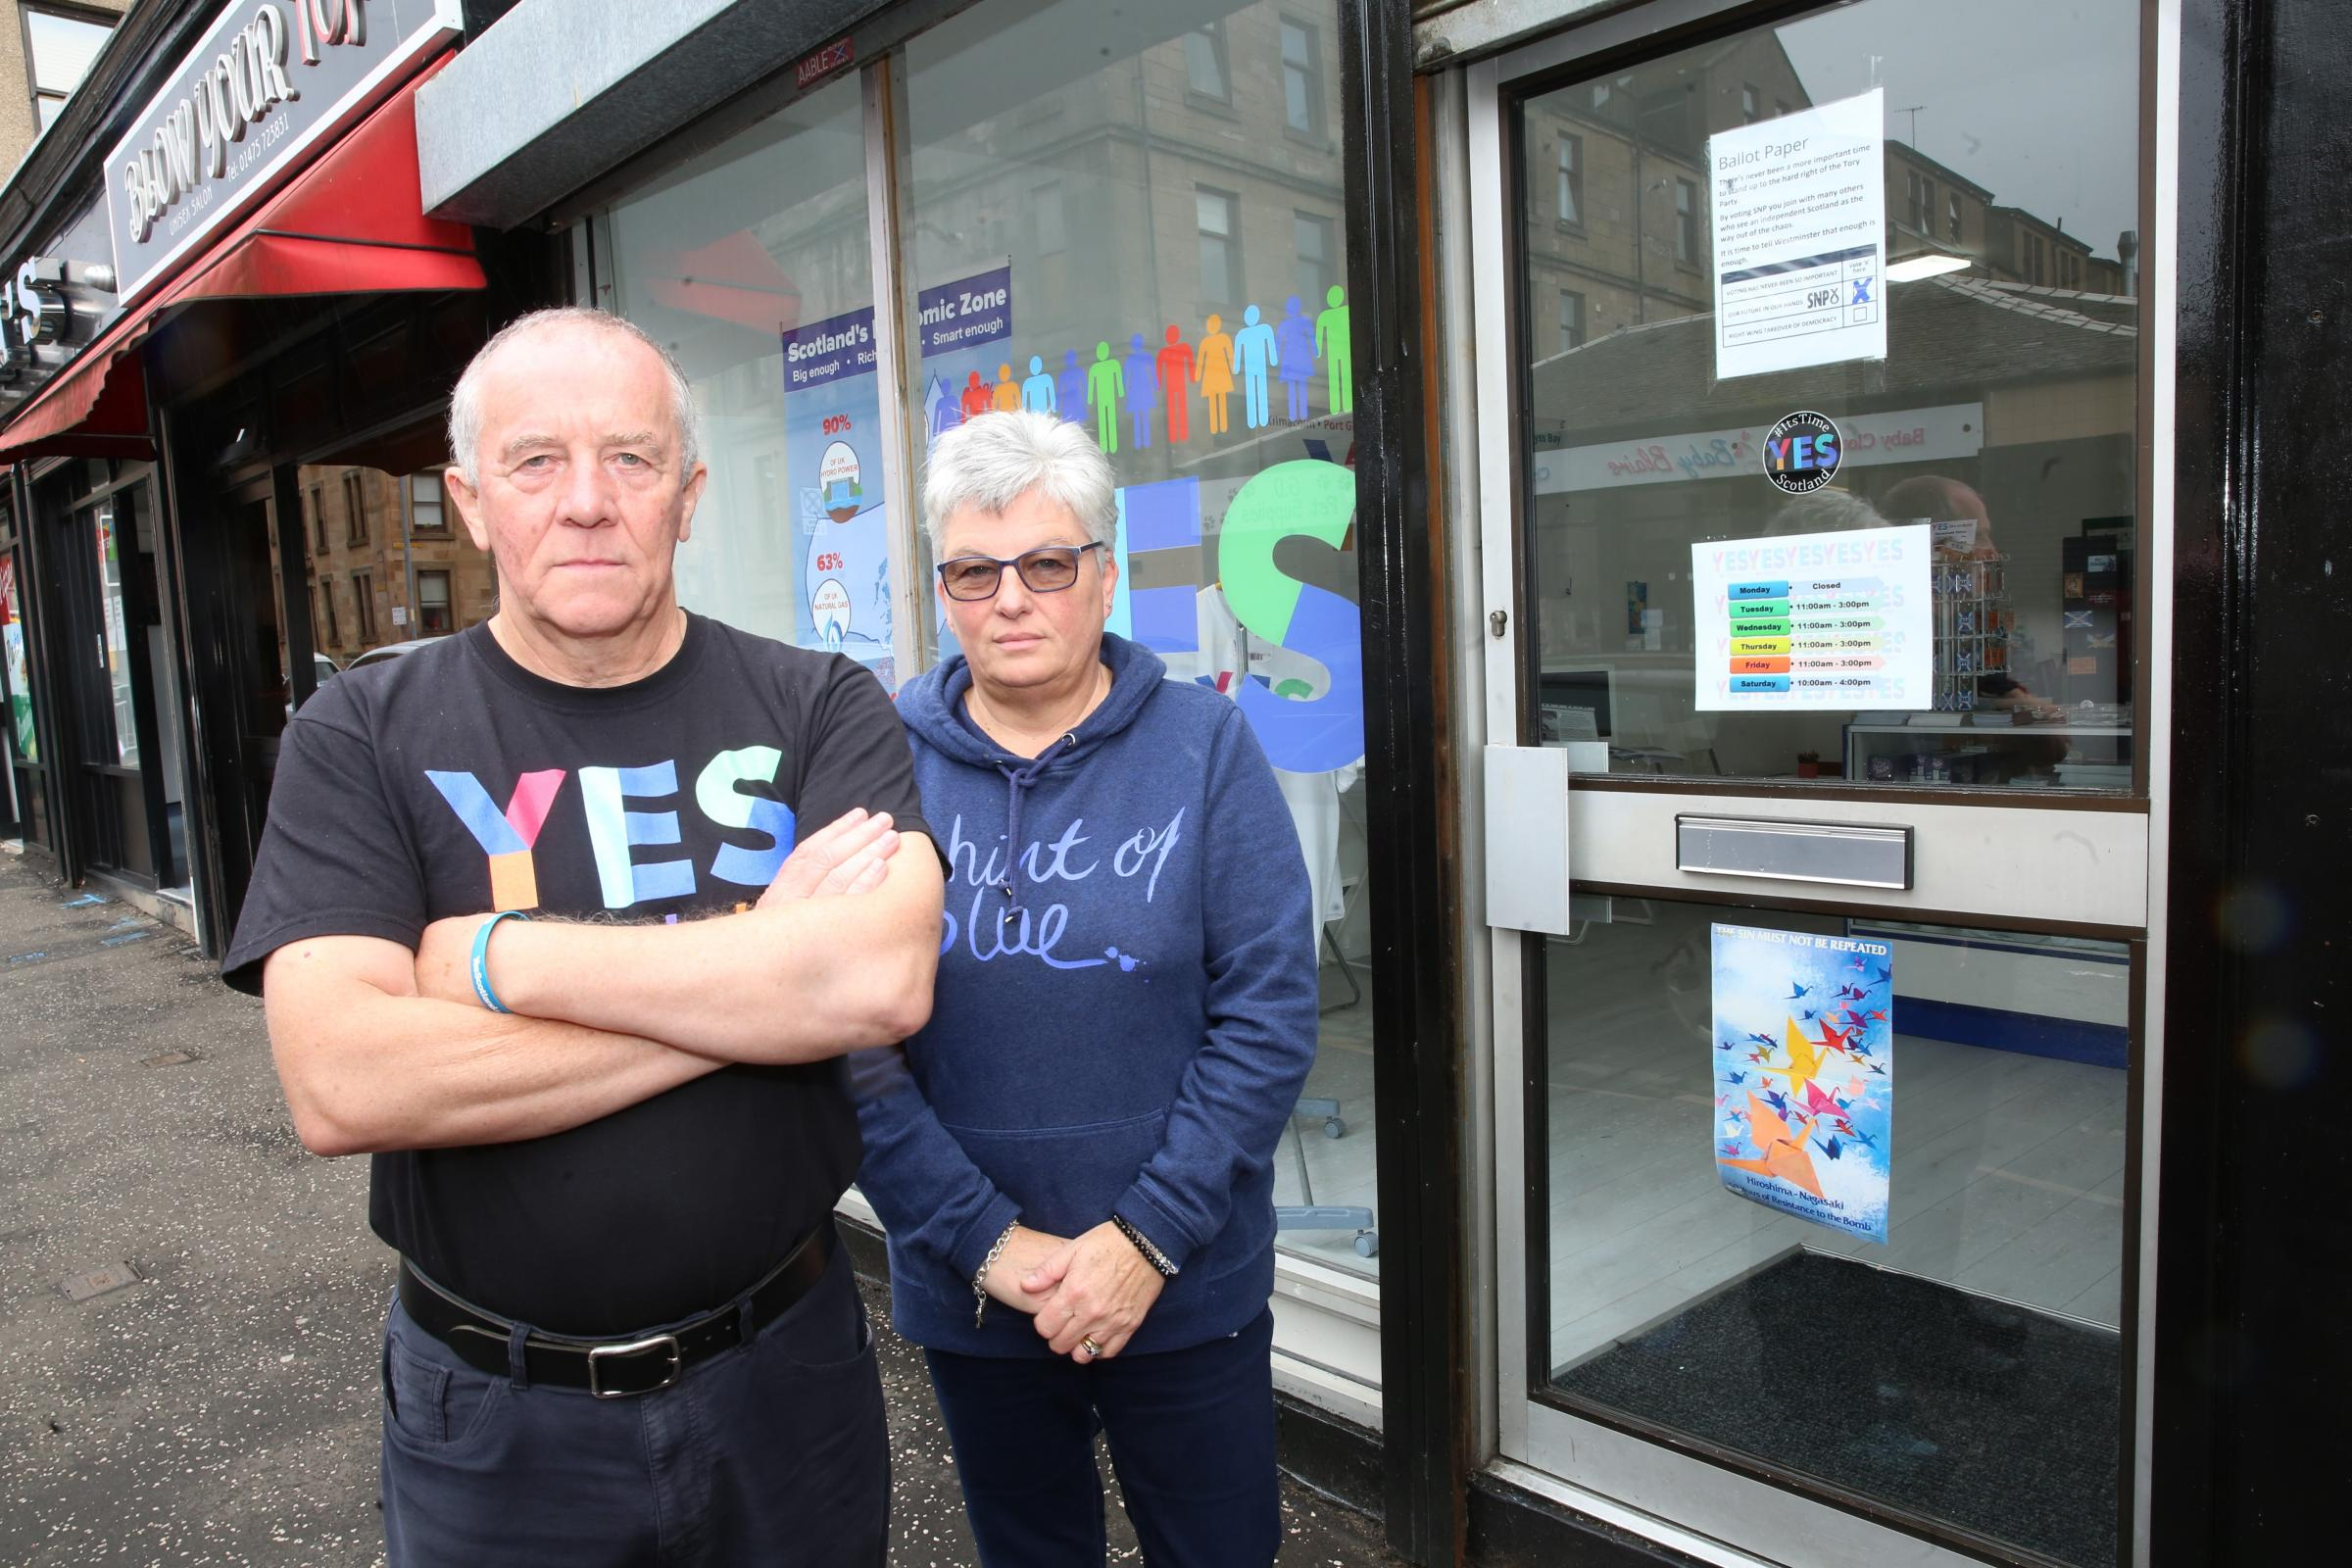 Human faeces smeared over Yes shop in sickening attack